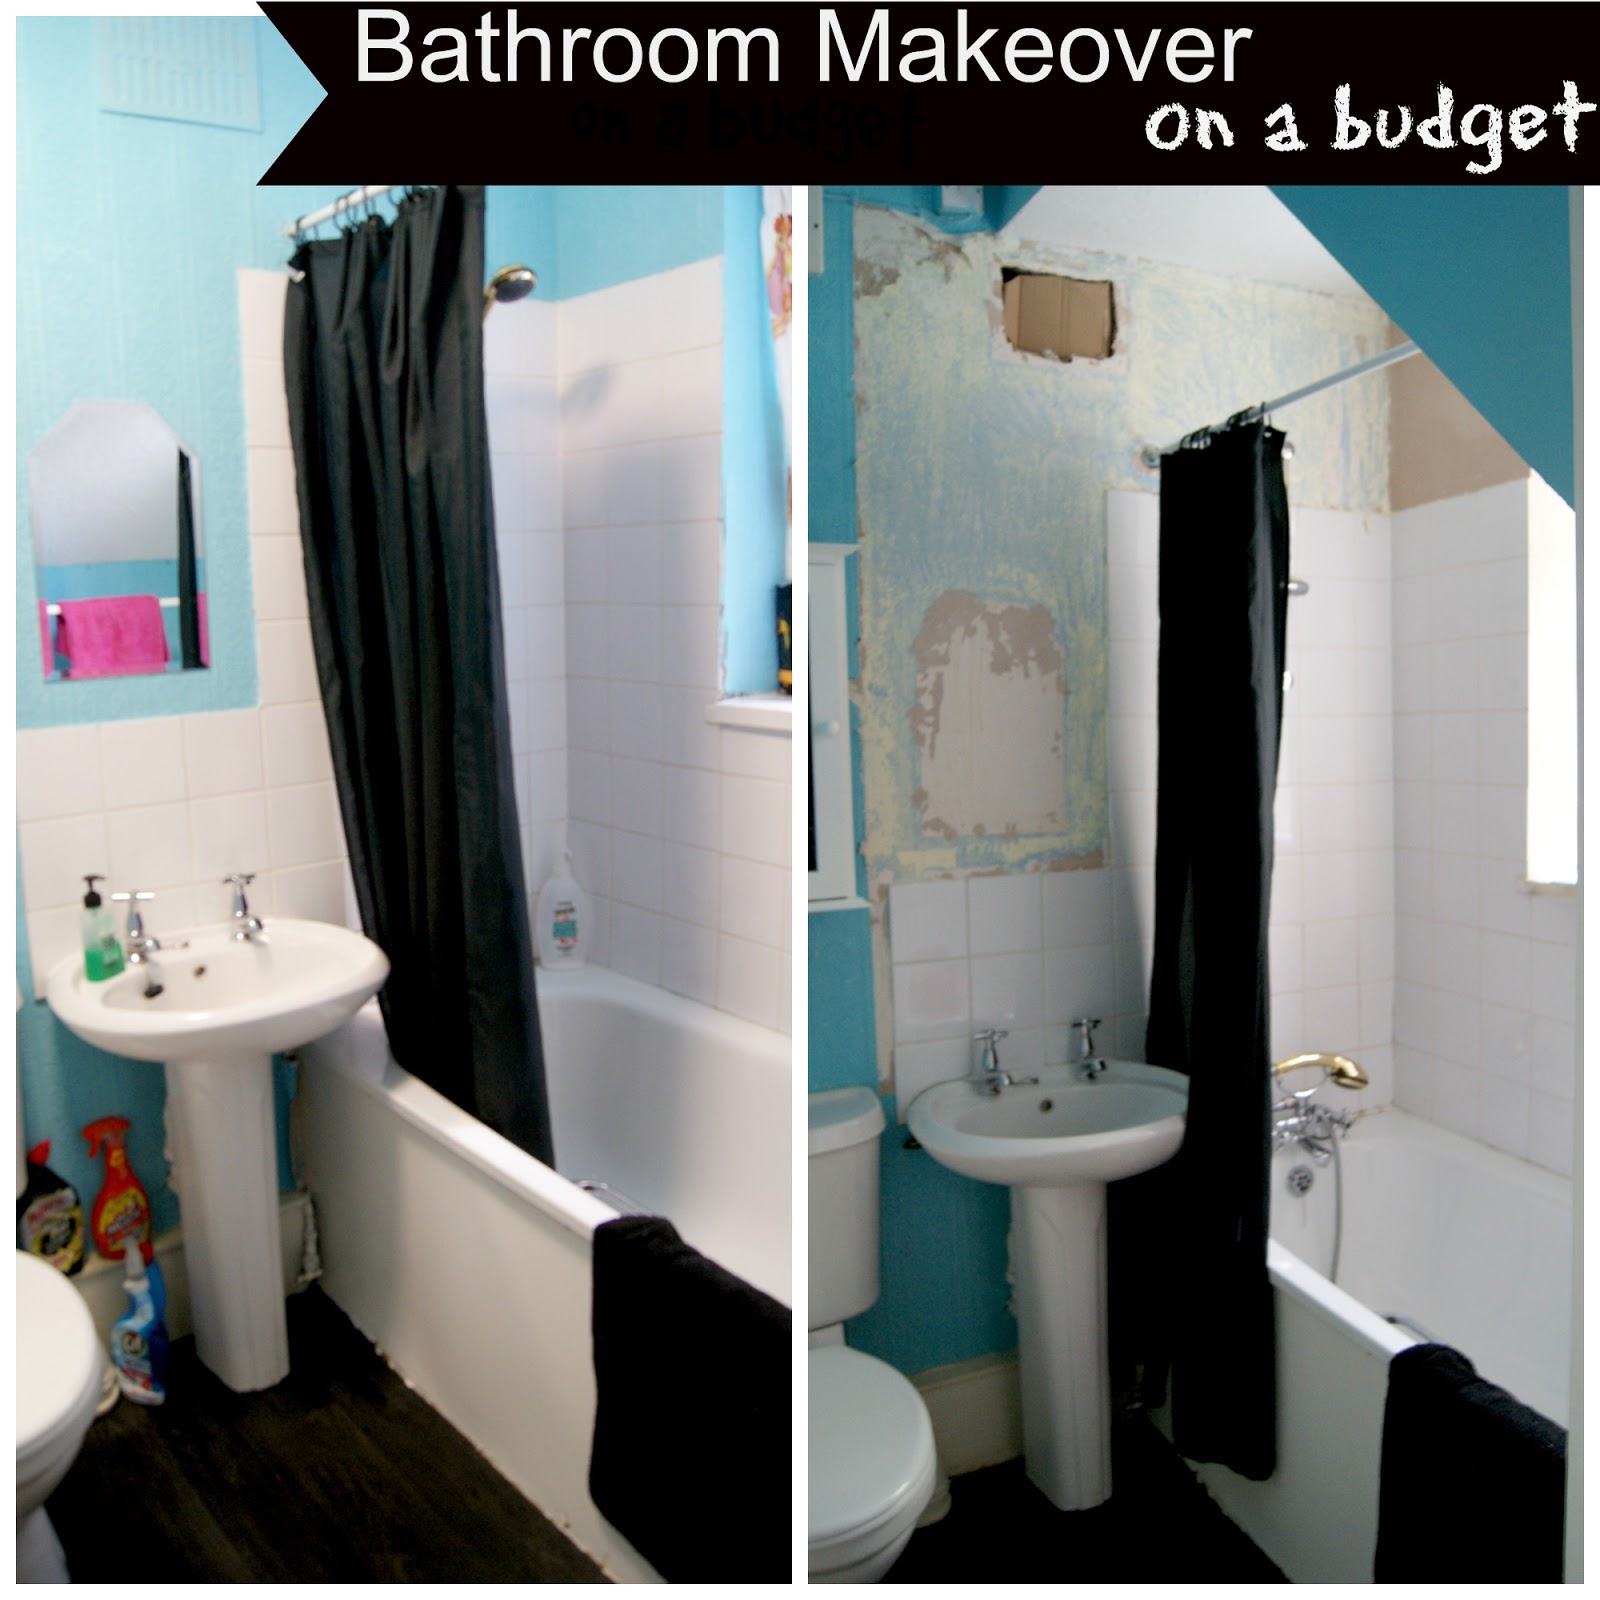 The Syders Bathroom Makeover On A Budget